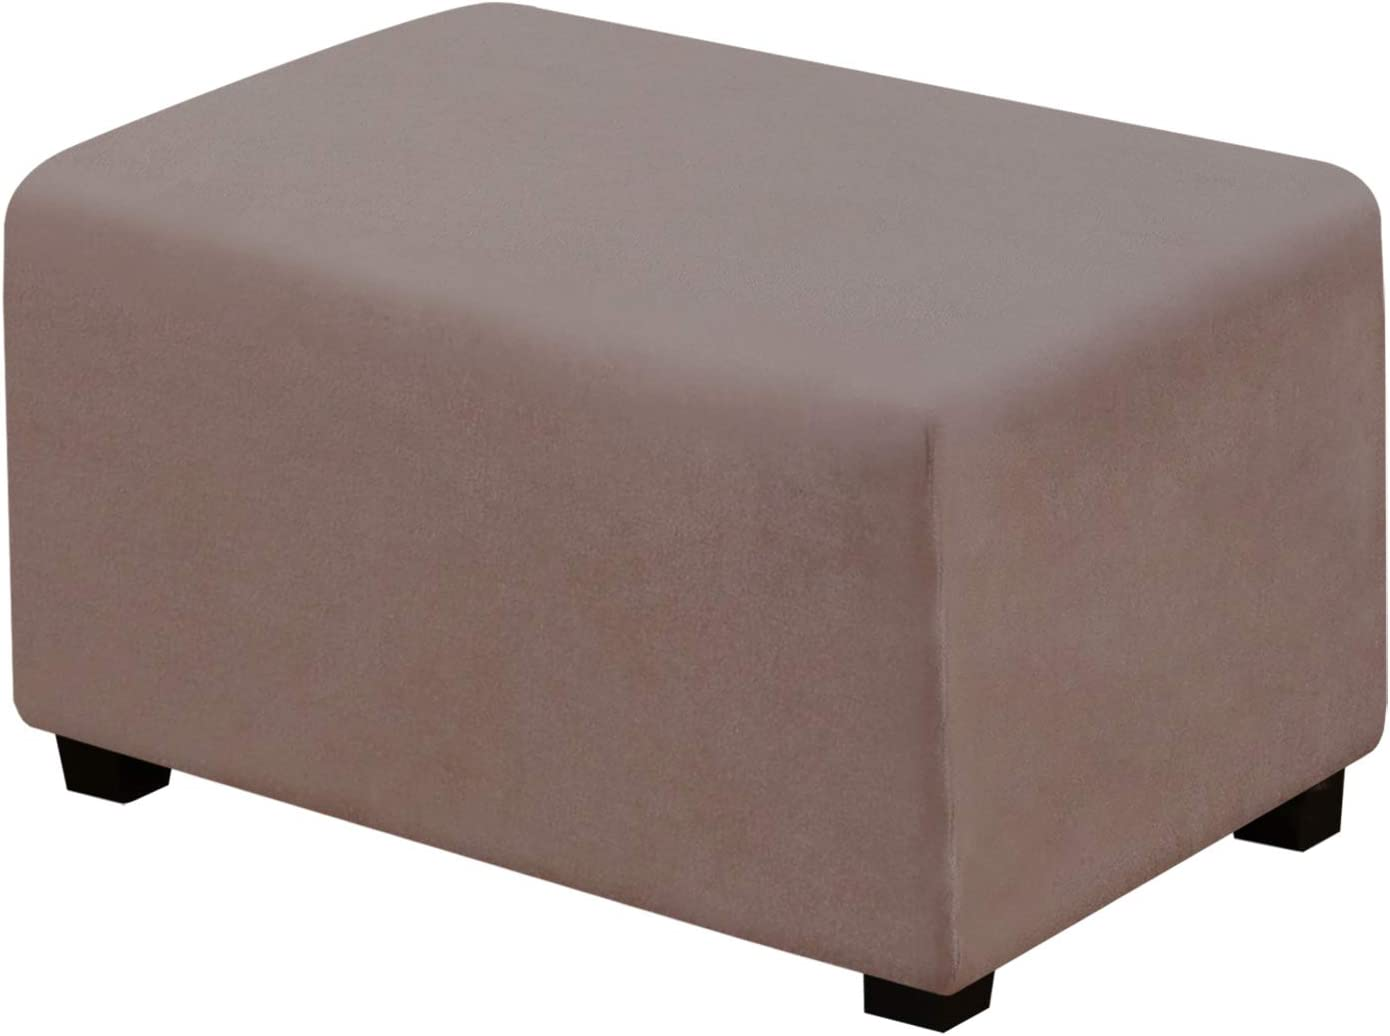 Suede Ottoman Cover Ottoman Slipcovers Removable Footstool Protector Velvet Plush 1 Piece Water Repellent Furniture Protector with Elastic Bottom, Machine Washable(Ottoman Large, Taupe)